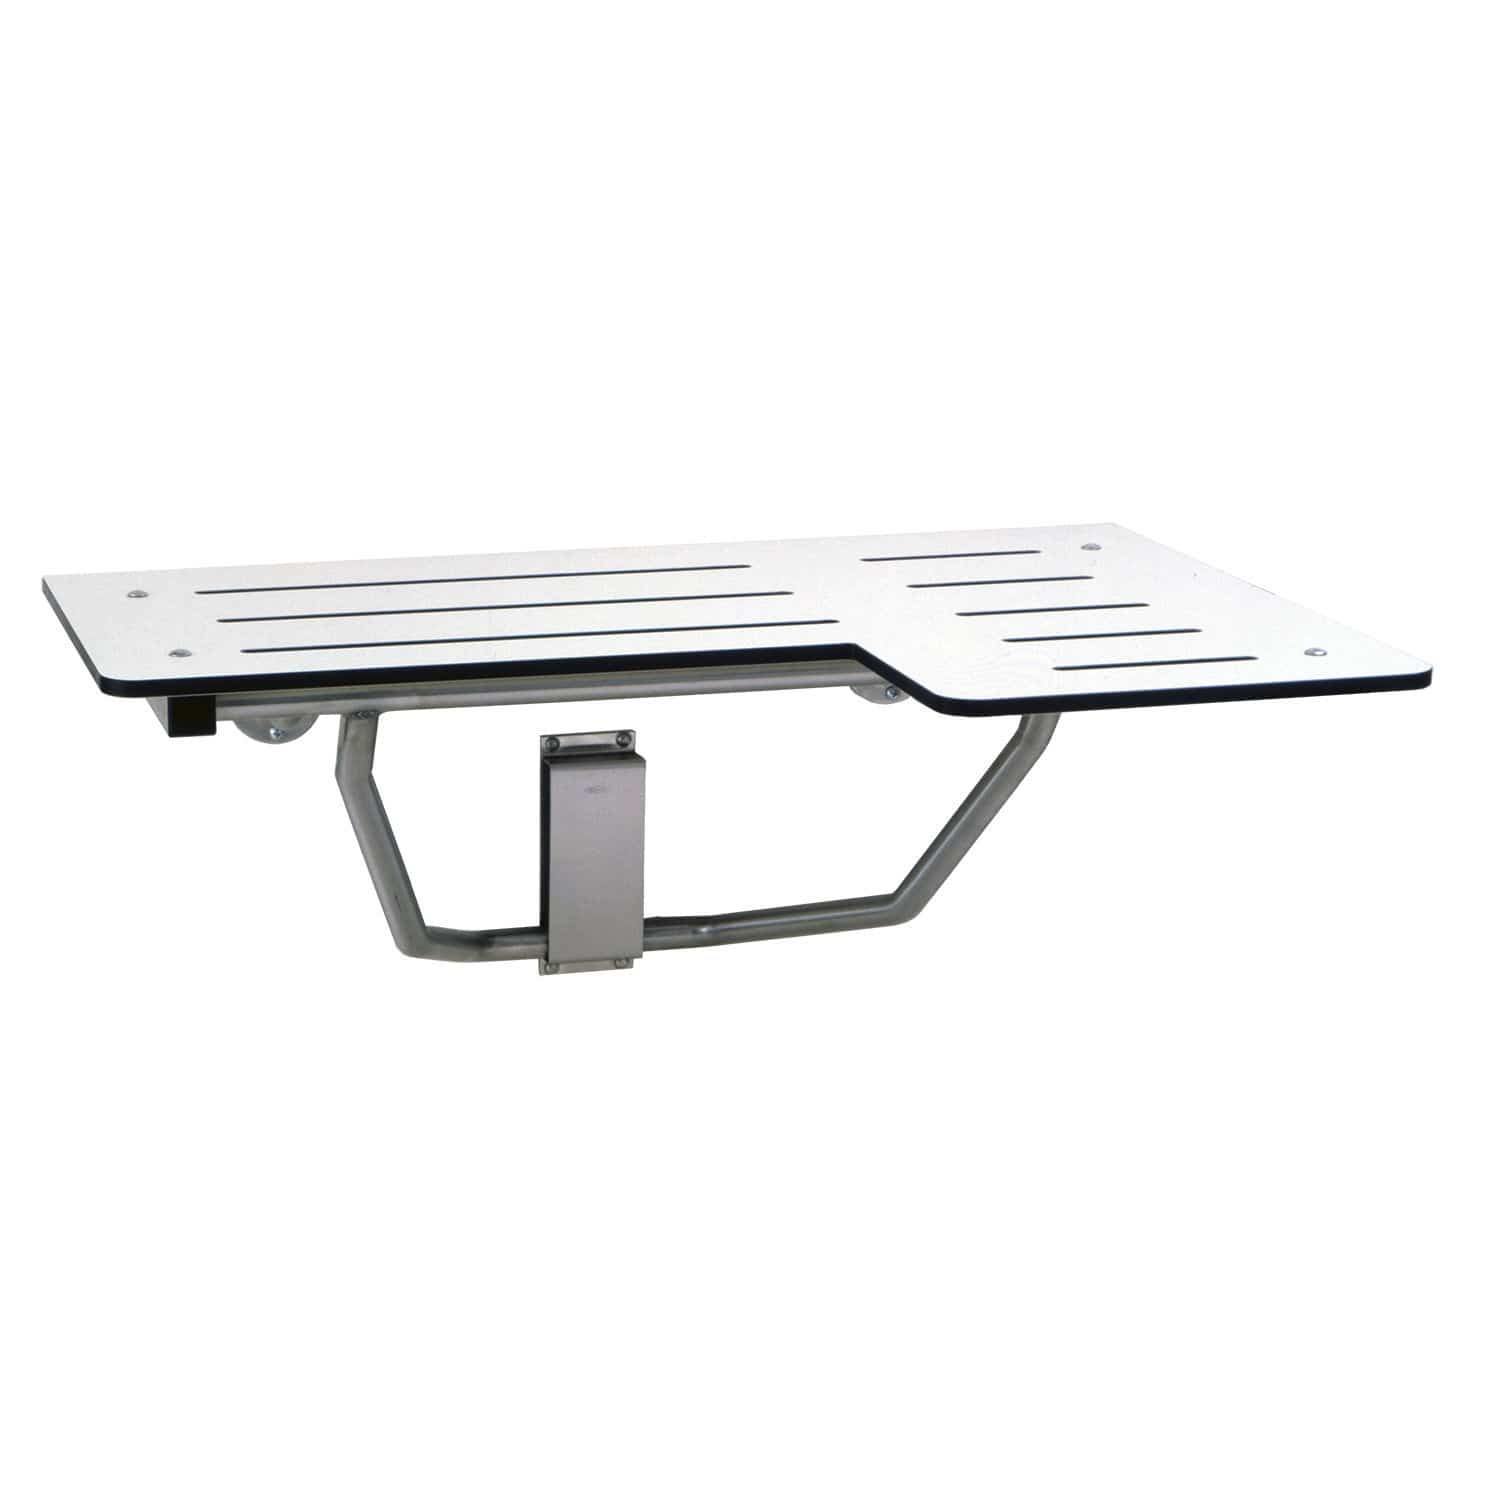 Folding shower seat / stainless steel / wall-mounted - B-5181 ...